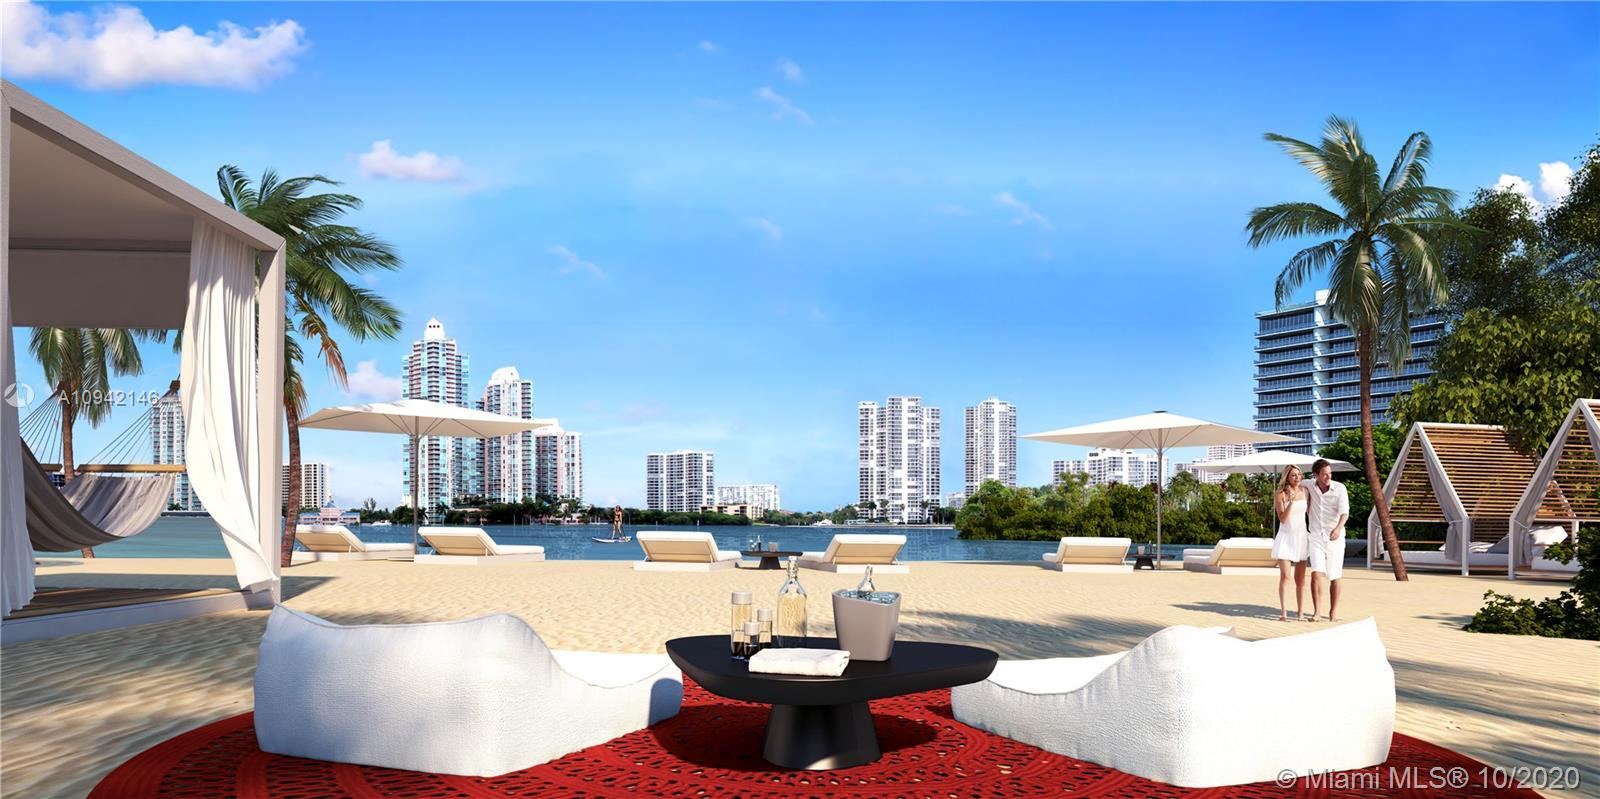 Beautiful 3BED/4.5 BATH UNIT located on South Florida's last private island. Unit offers gorgeous vi